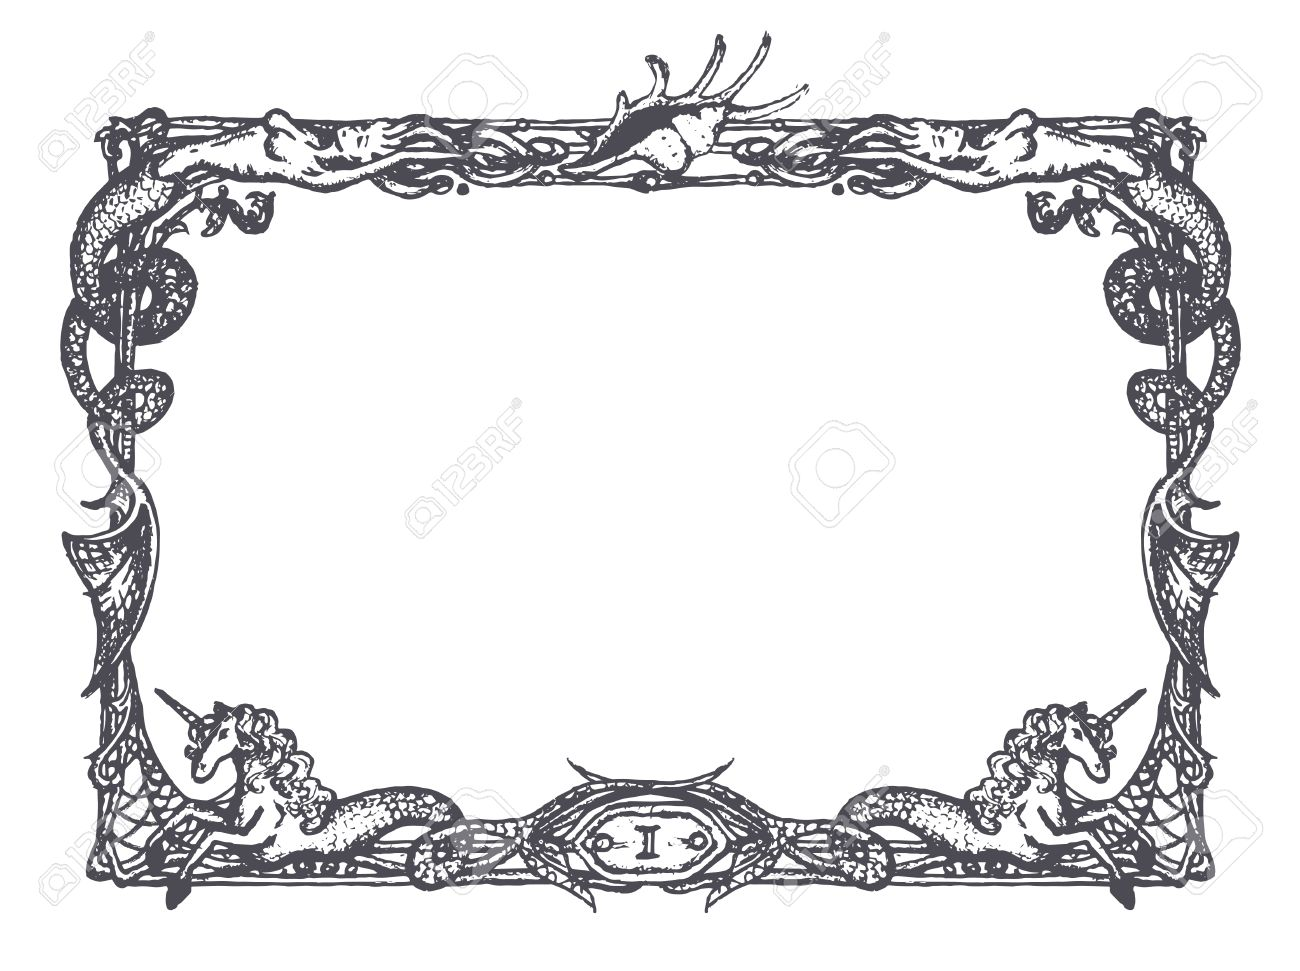 Vintage Frame With Mermaids And Sea Horses Royalty Free Cliparts ...